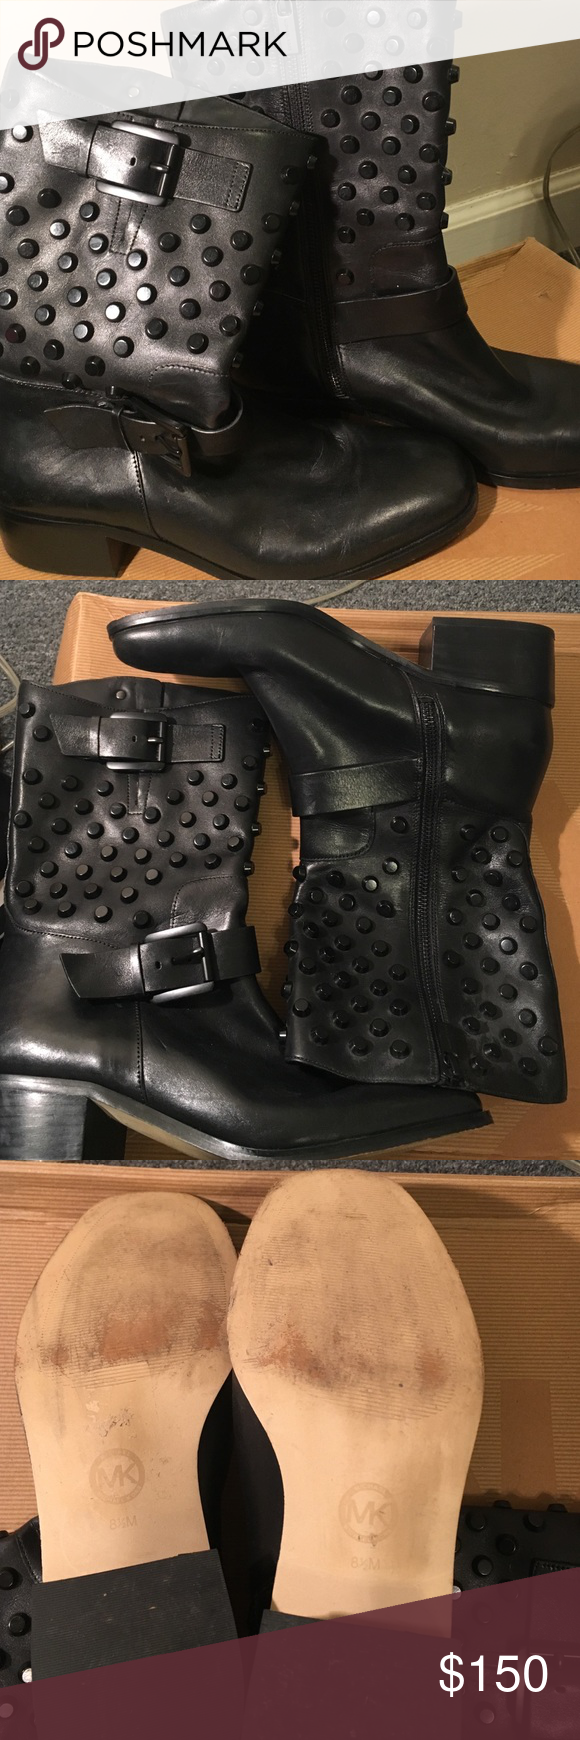 Authentic Micheal Kors studded boots size 8 1/2 Black Micheal Kors studded biker boot these are practically new this is an awesome boot will have for a long time to come. Michael Kors Shoes Combat & Moto Boots